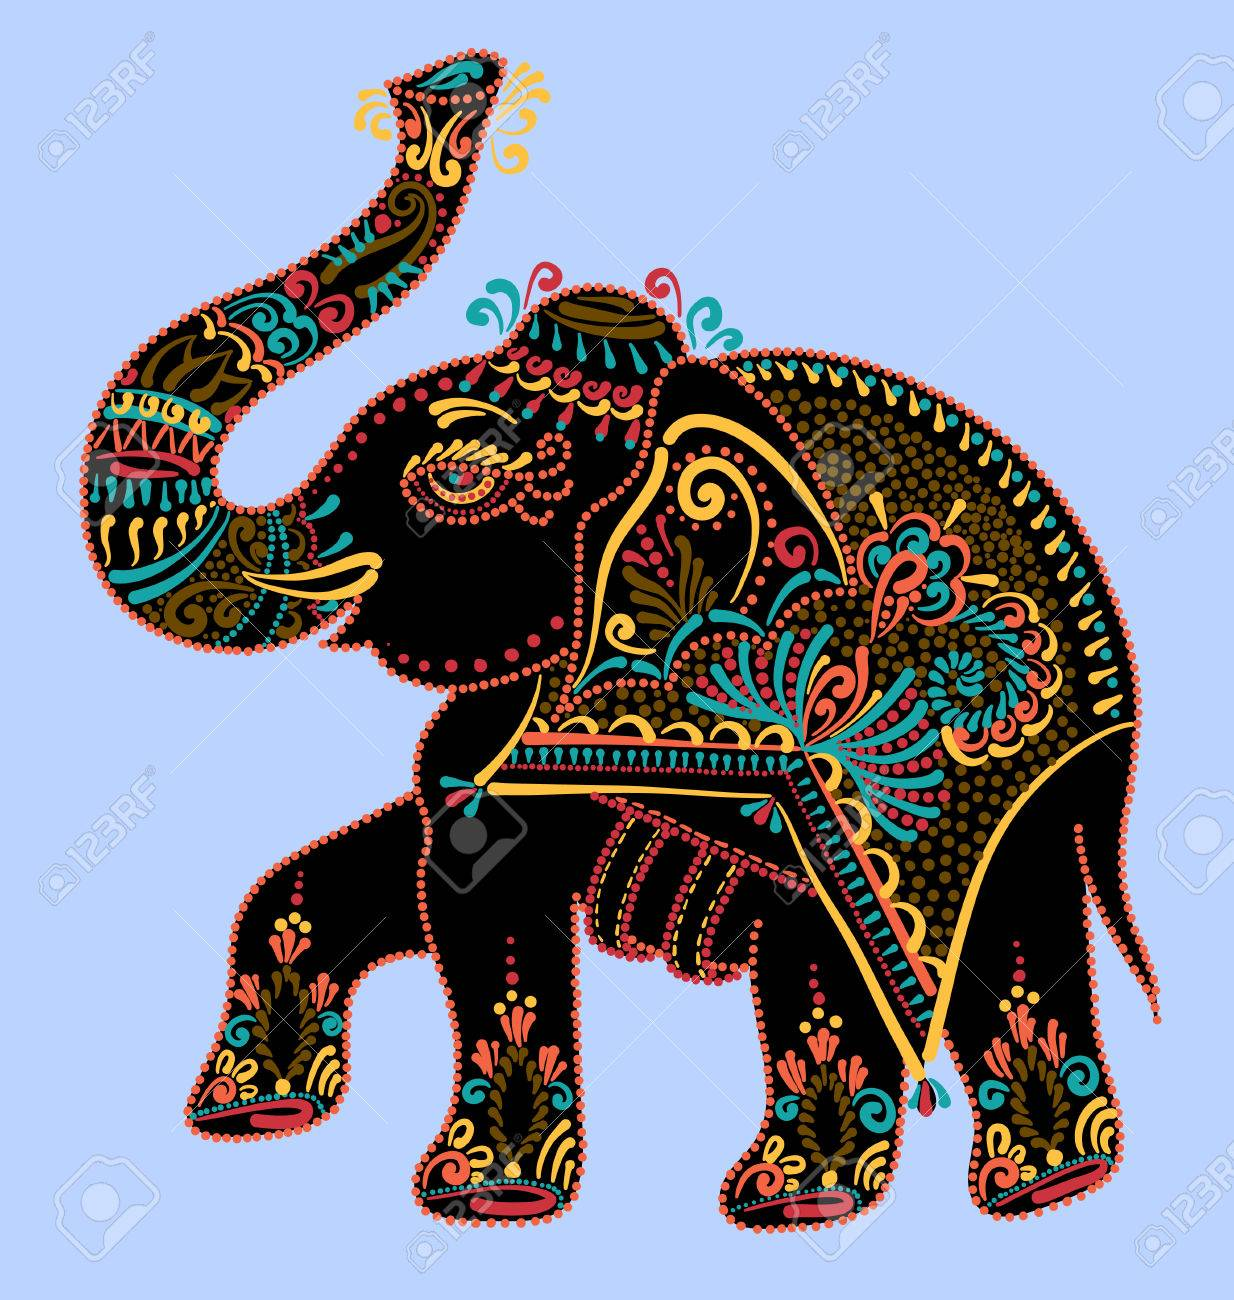 Indian Elephant Art Images